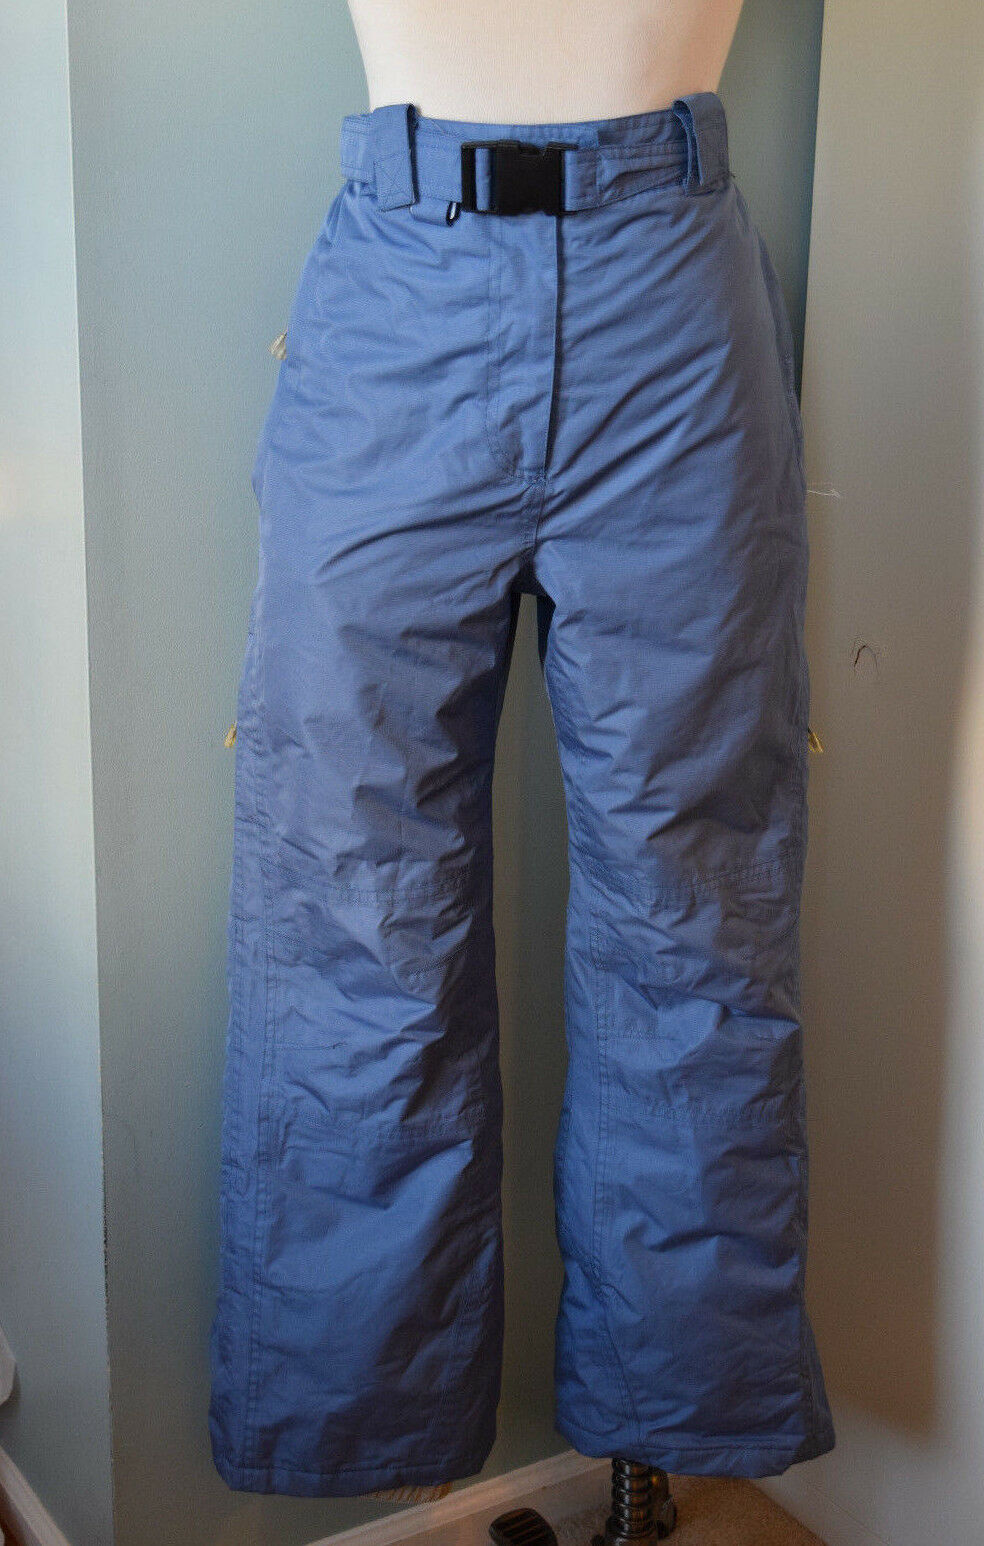 Trespass Snowboarding Ski pants women bluee S 4 6 Excellent Coldheat insulated